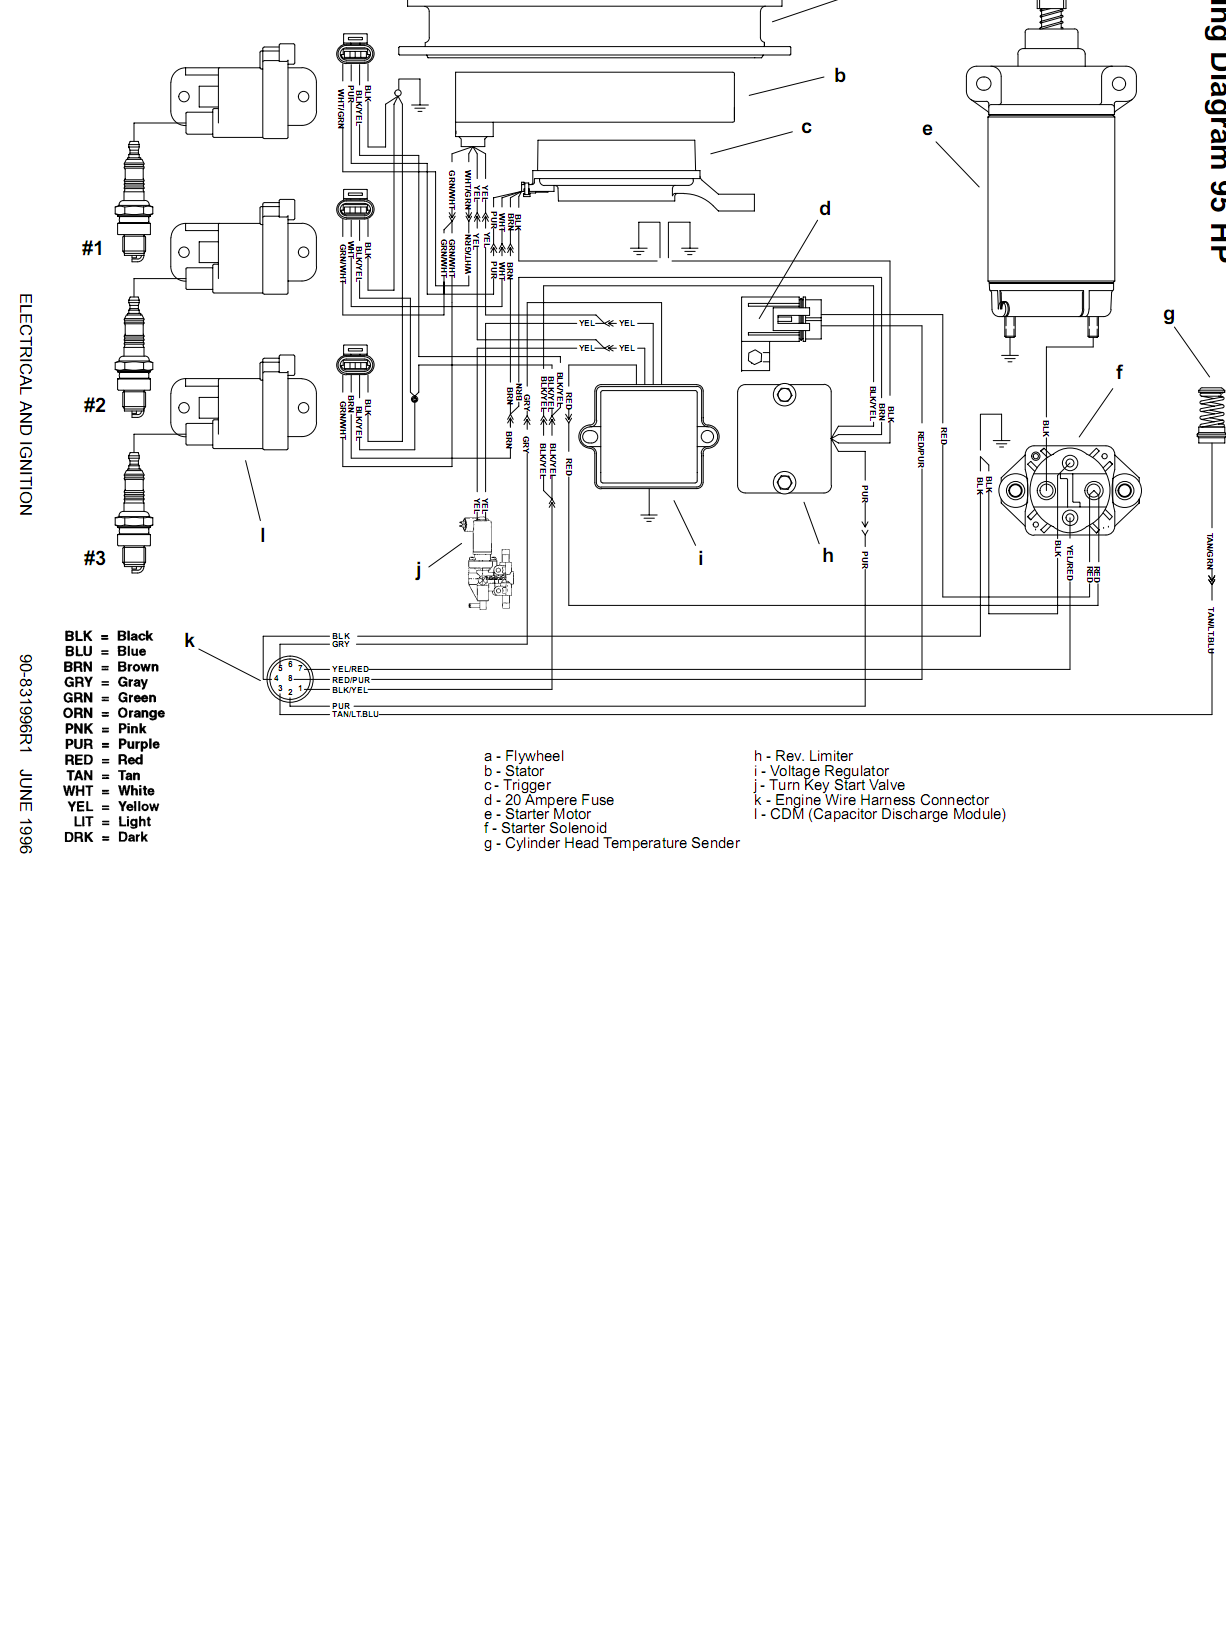 2012 05 01_141639_95hp_wiring_diagram i have purchased a 1994 searay sea raider with a 90hp sportjet and Ignition Switch Removal at crackthecode.co